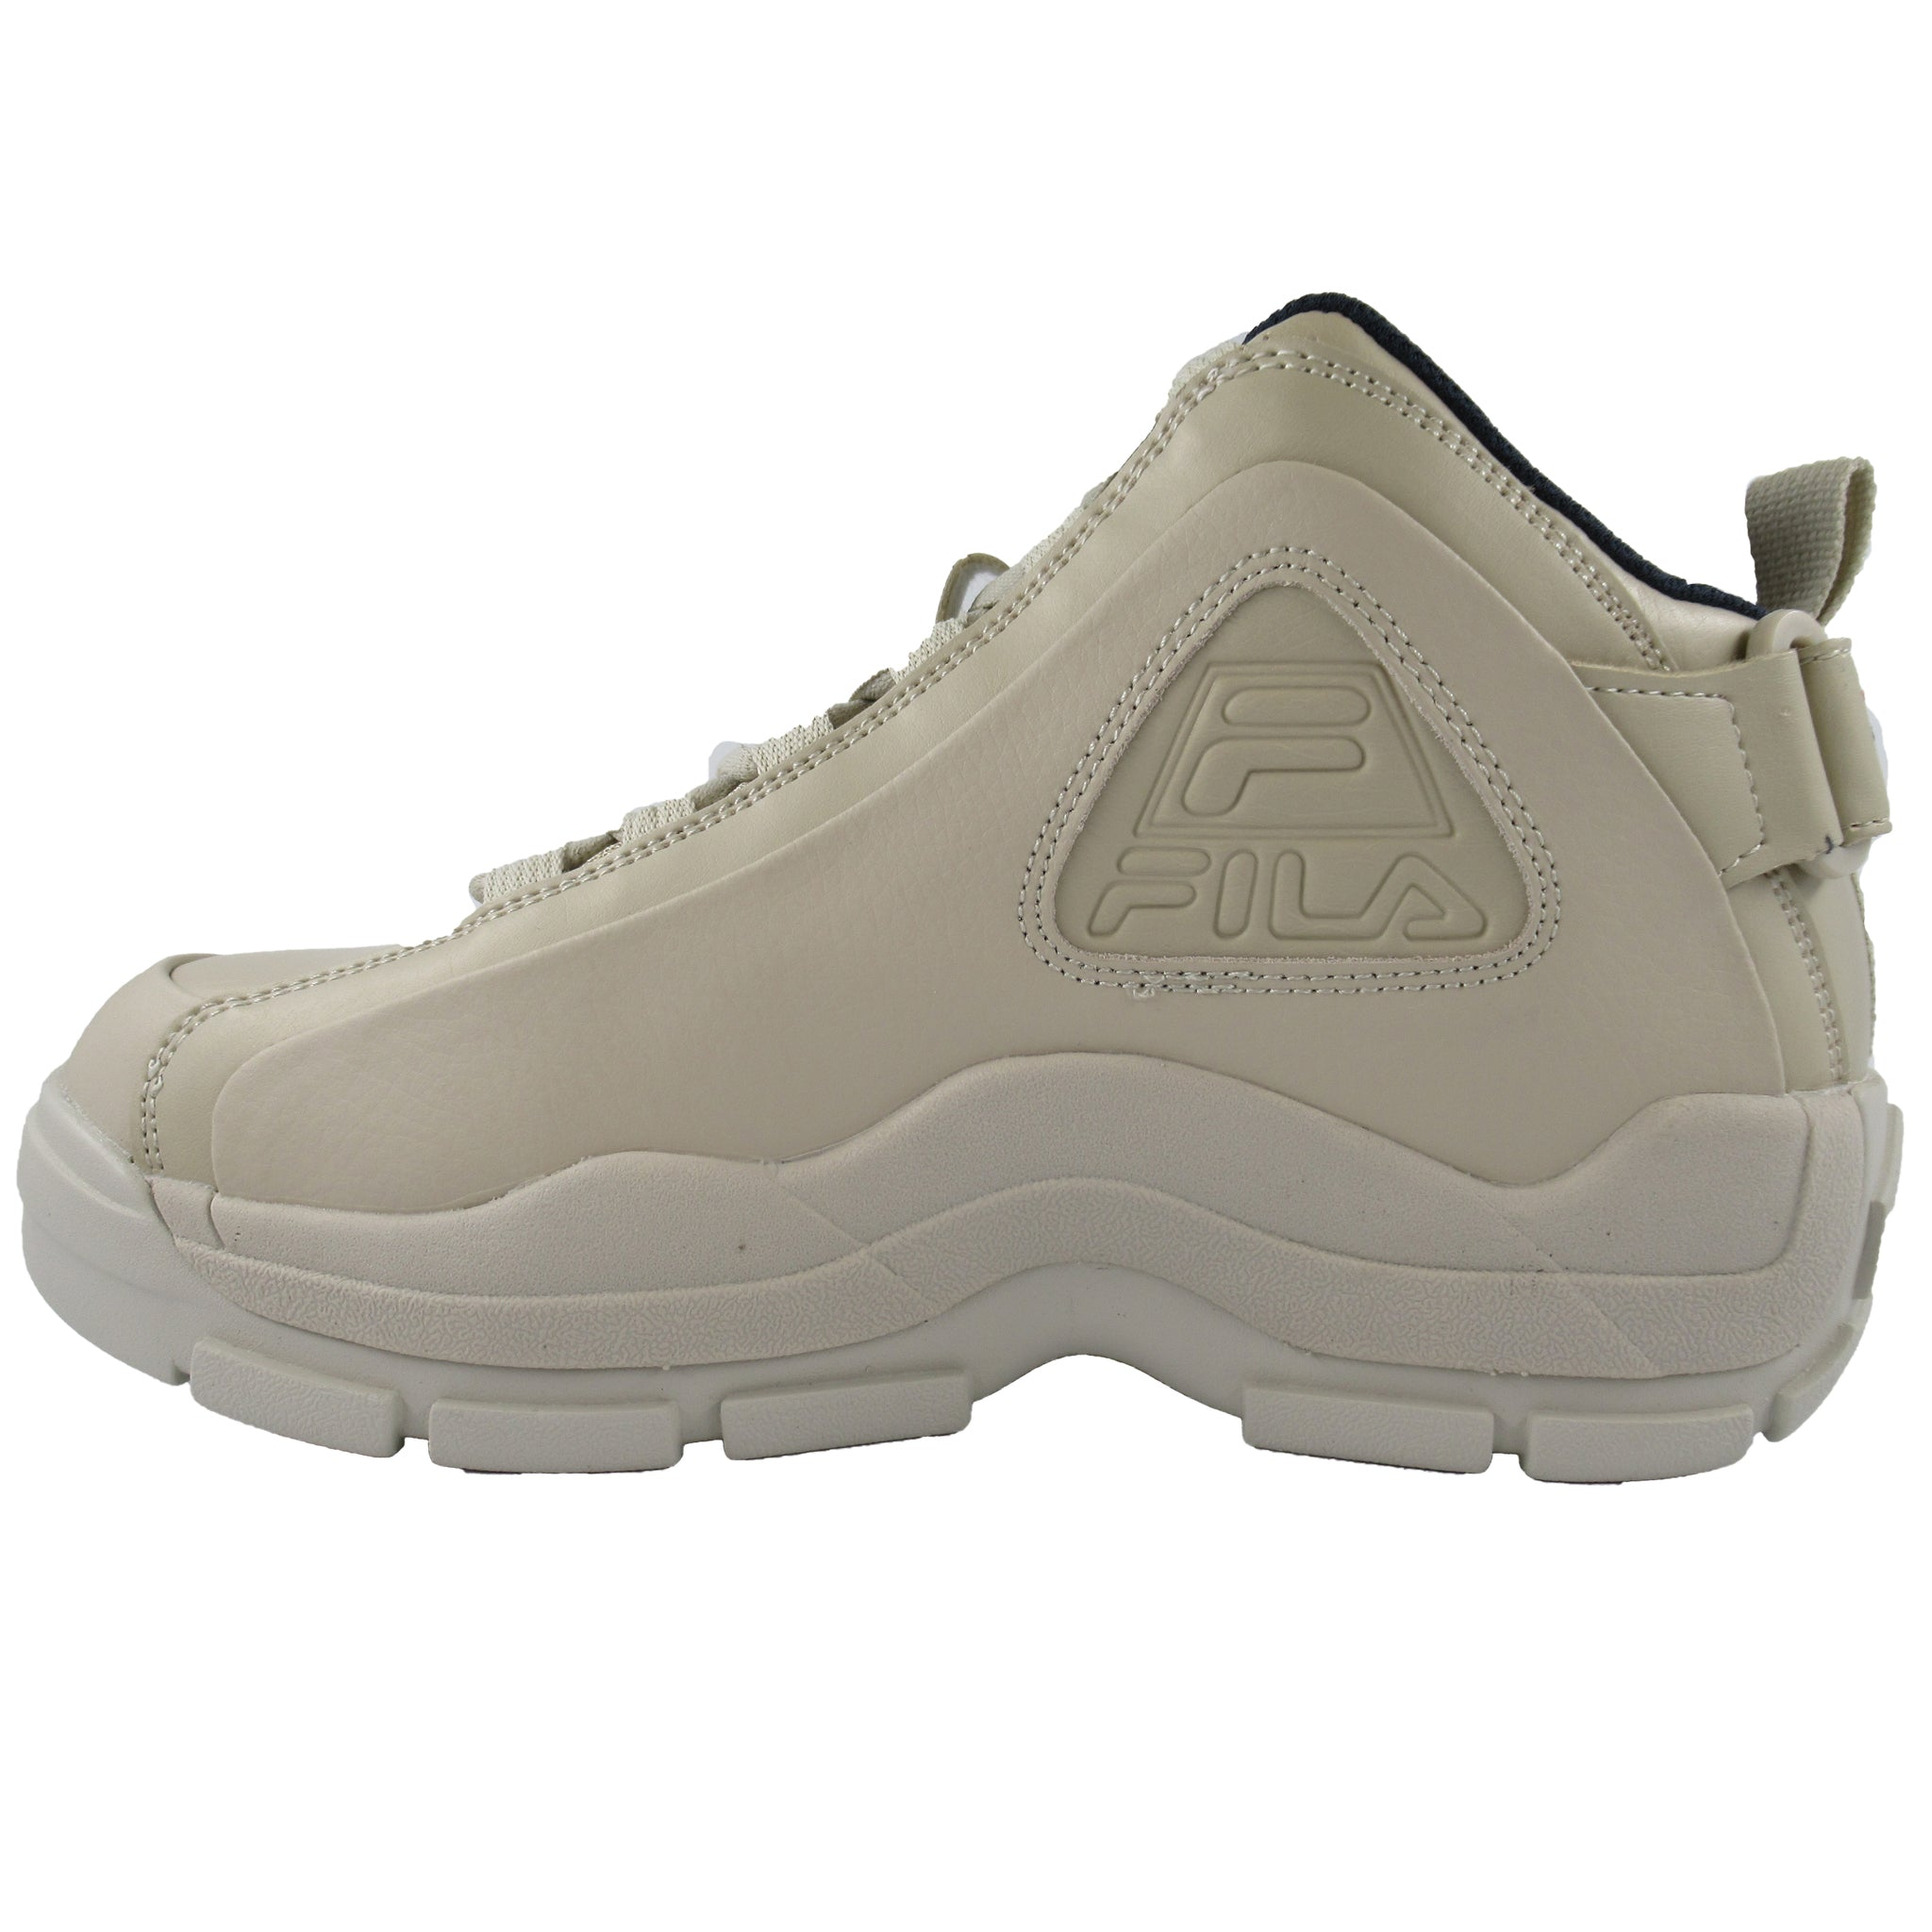 Fila Men's Grant Hill 2 Cement Shoes That Shoe Store  That Shoe Store